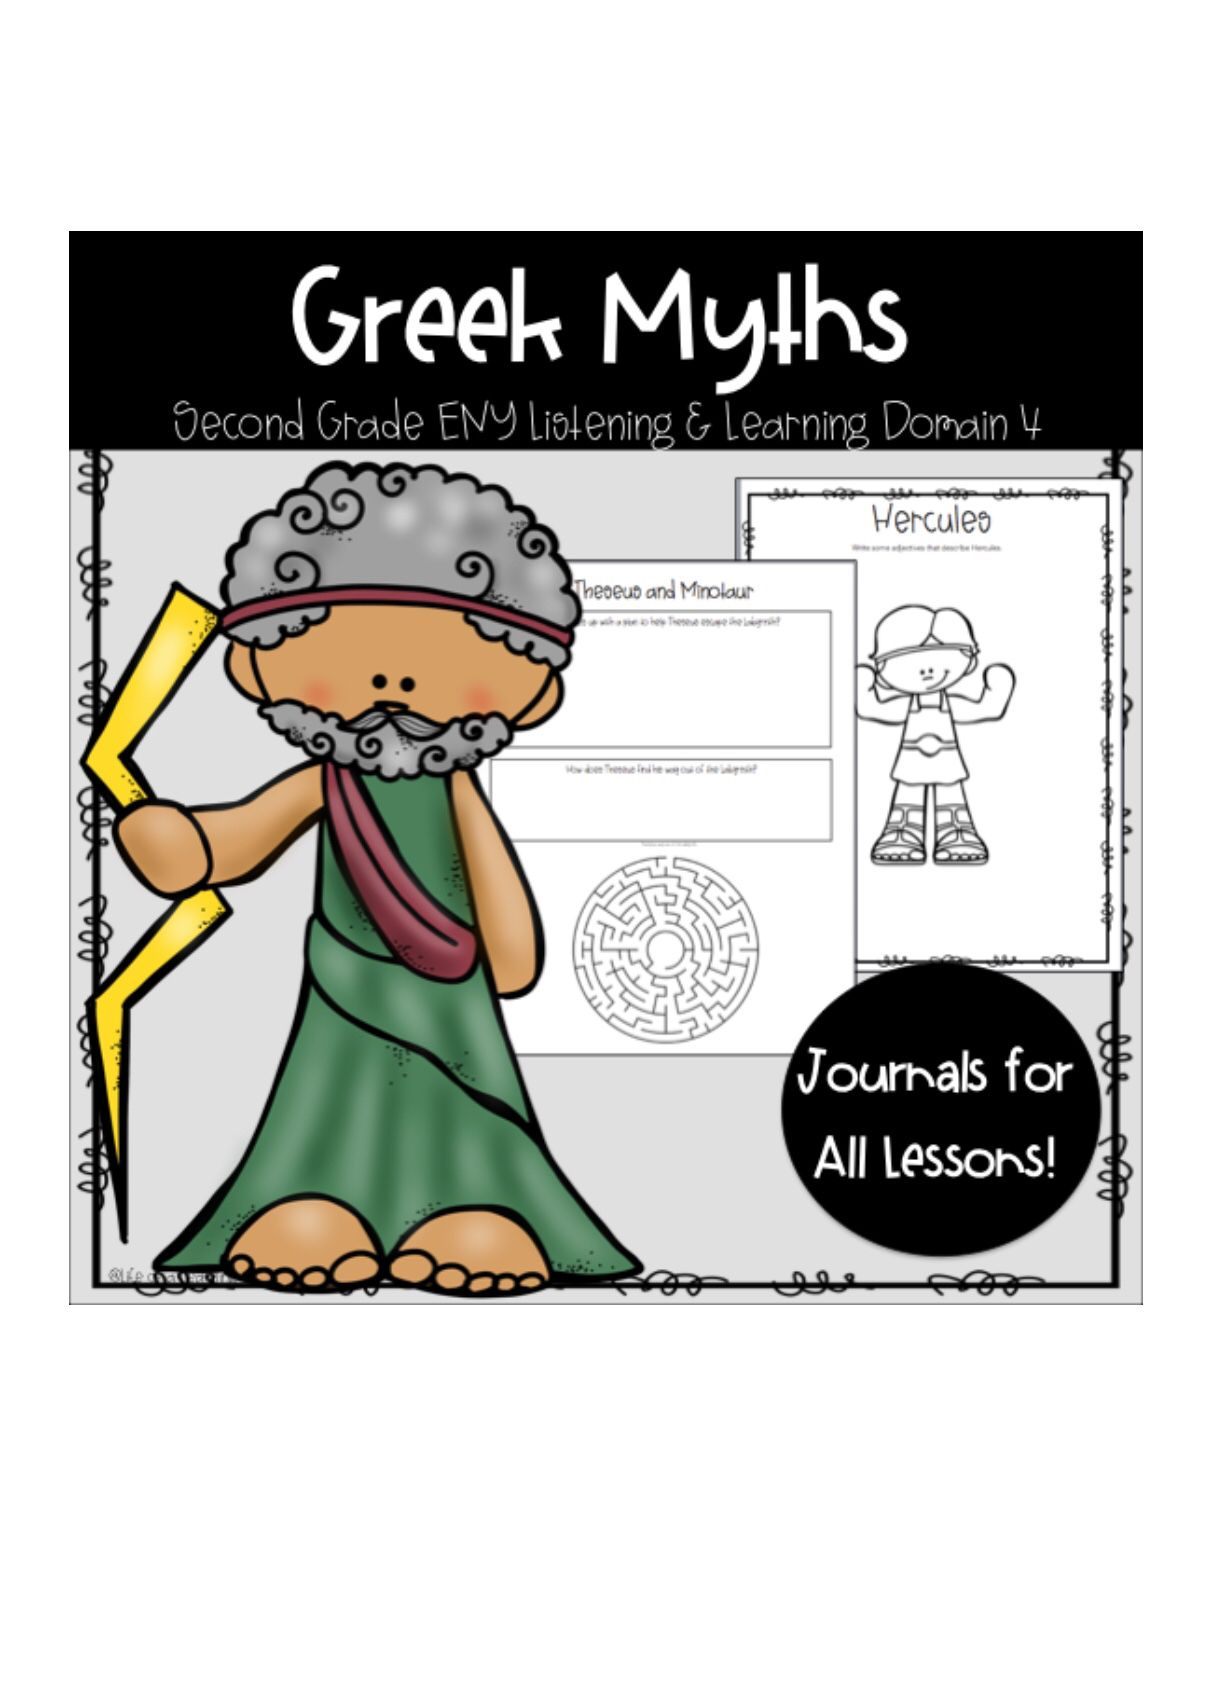 Ckla Eny Greek Myths Grade 2 Domain 4 Listening Journal